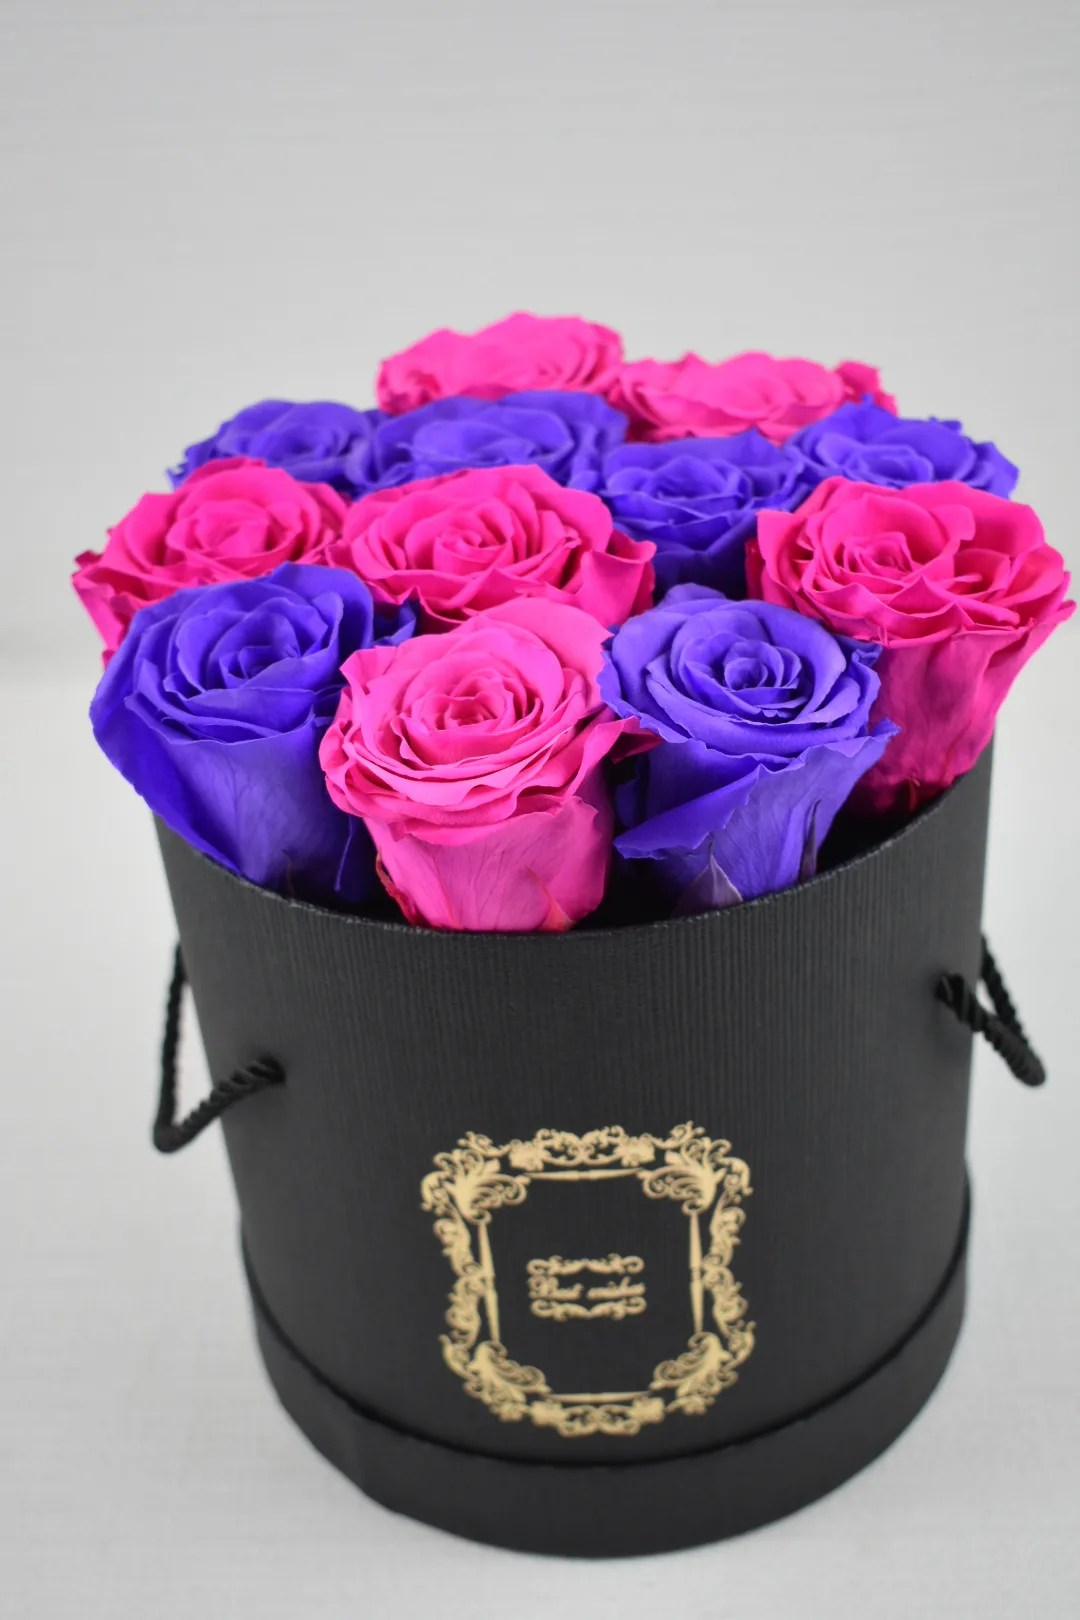 everlasting roses pink and